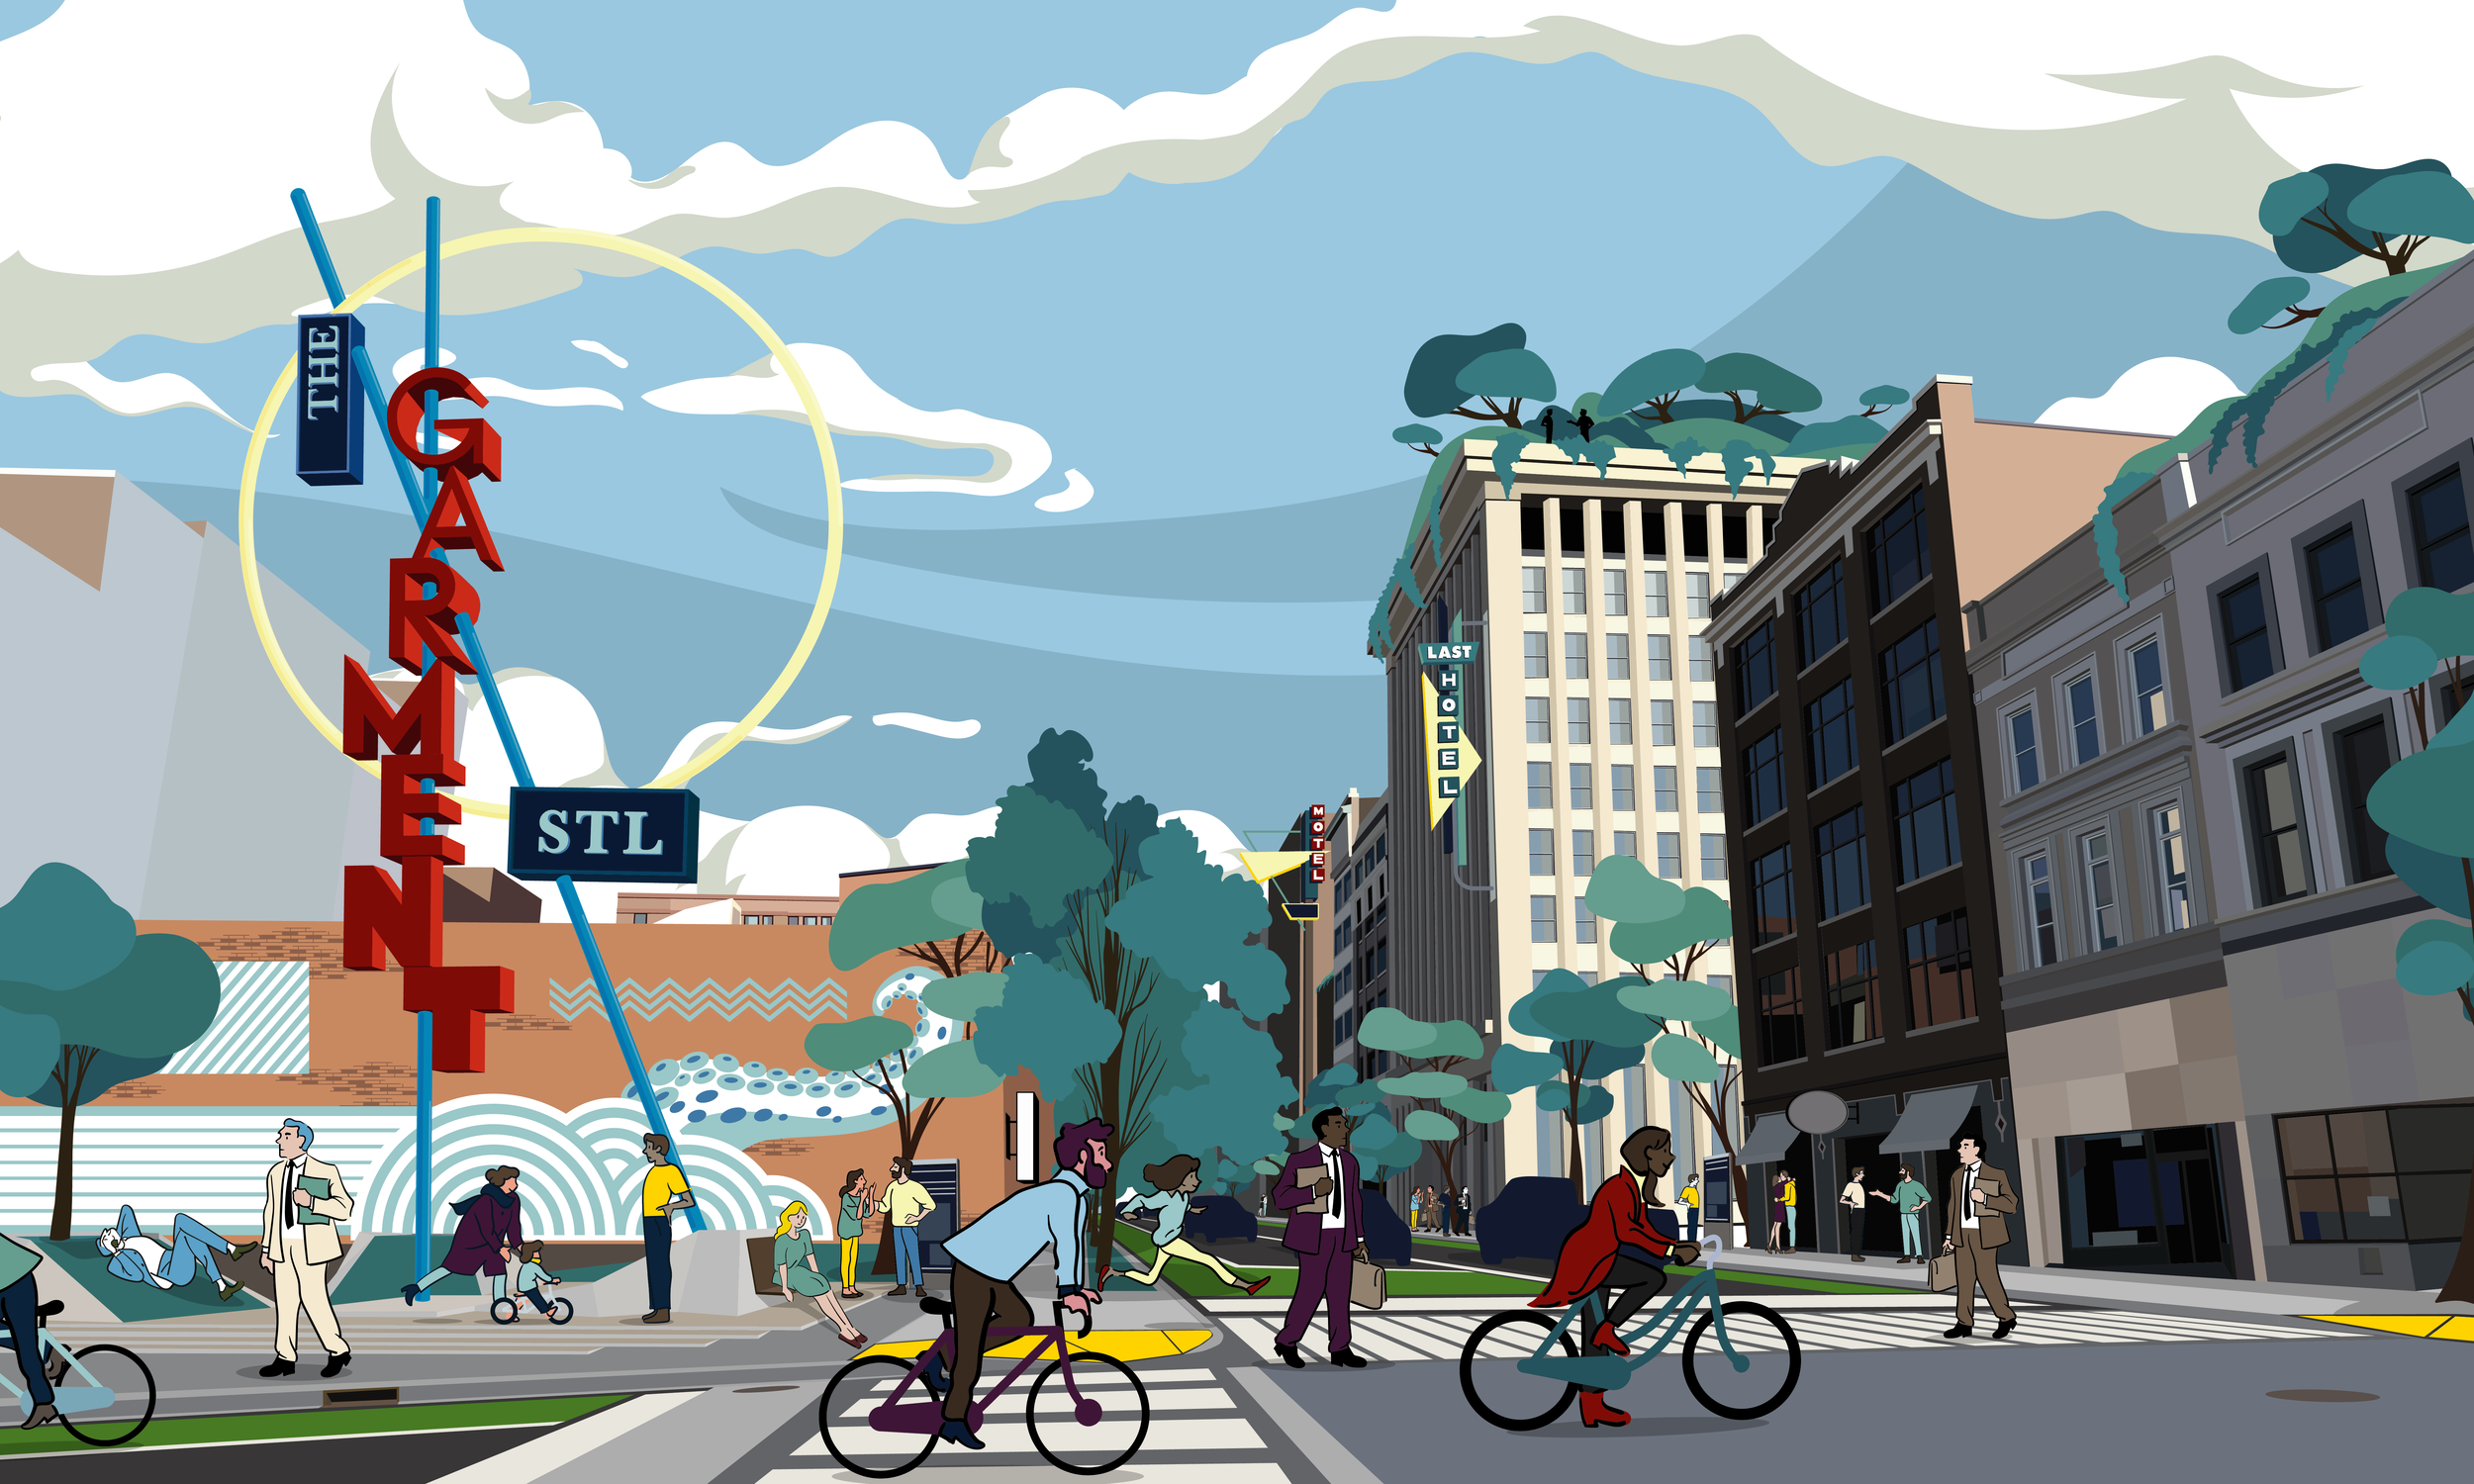 Visualization of the Washington Avenue with 14th Street.